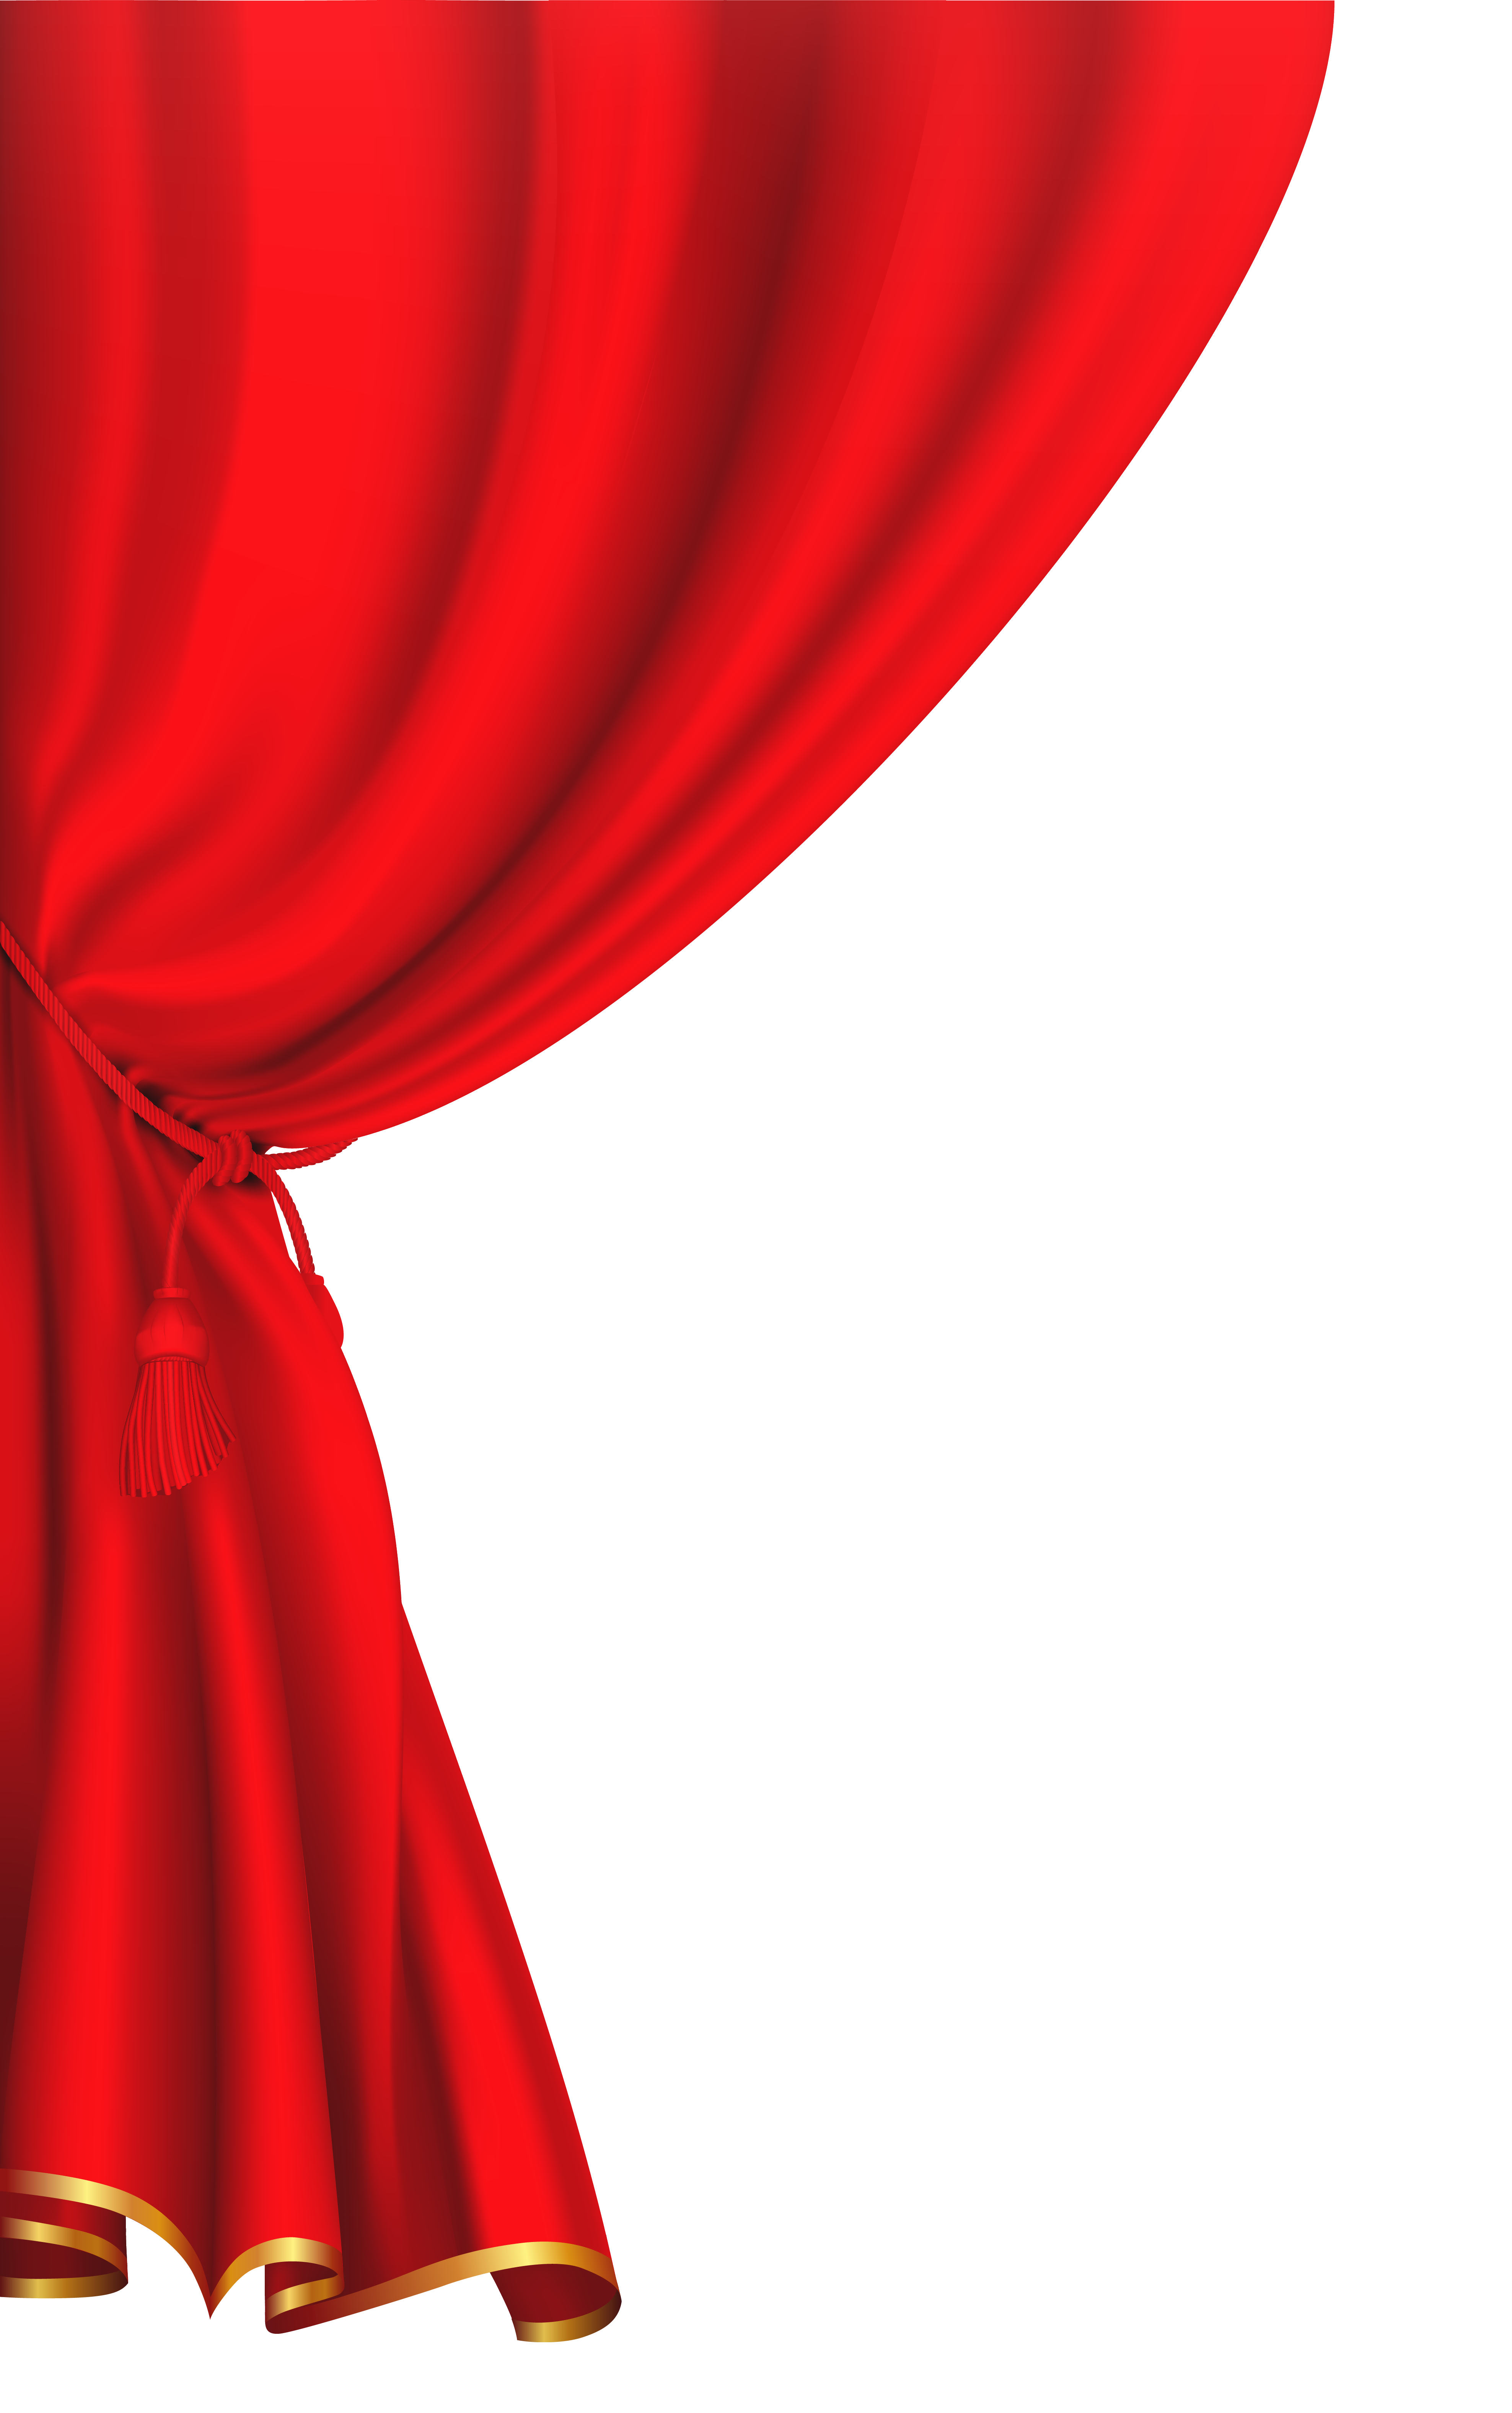 Lighting clipart theater curtain. Red image gallery yopriceville